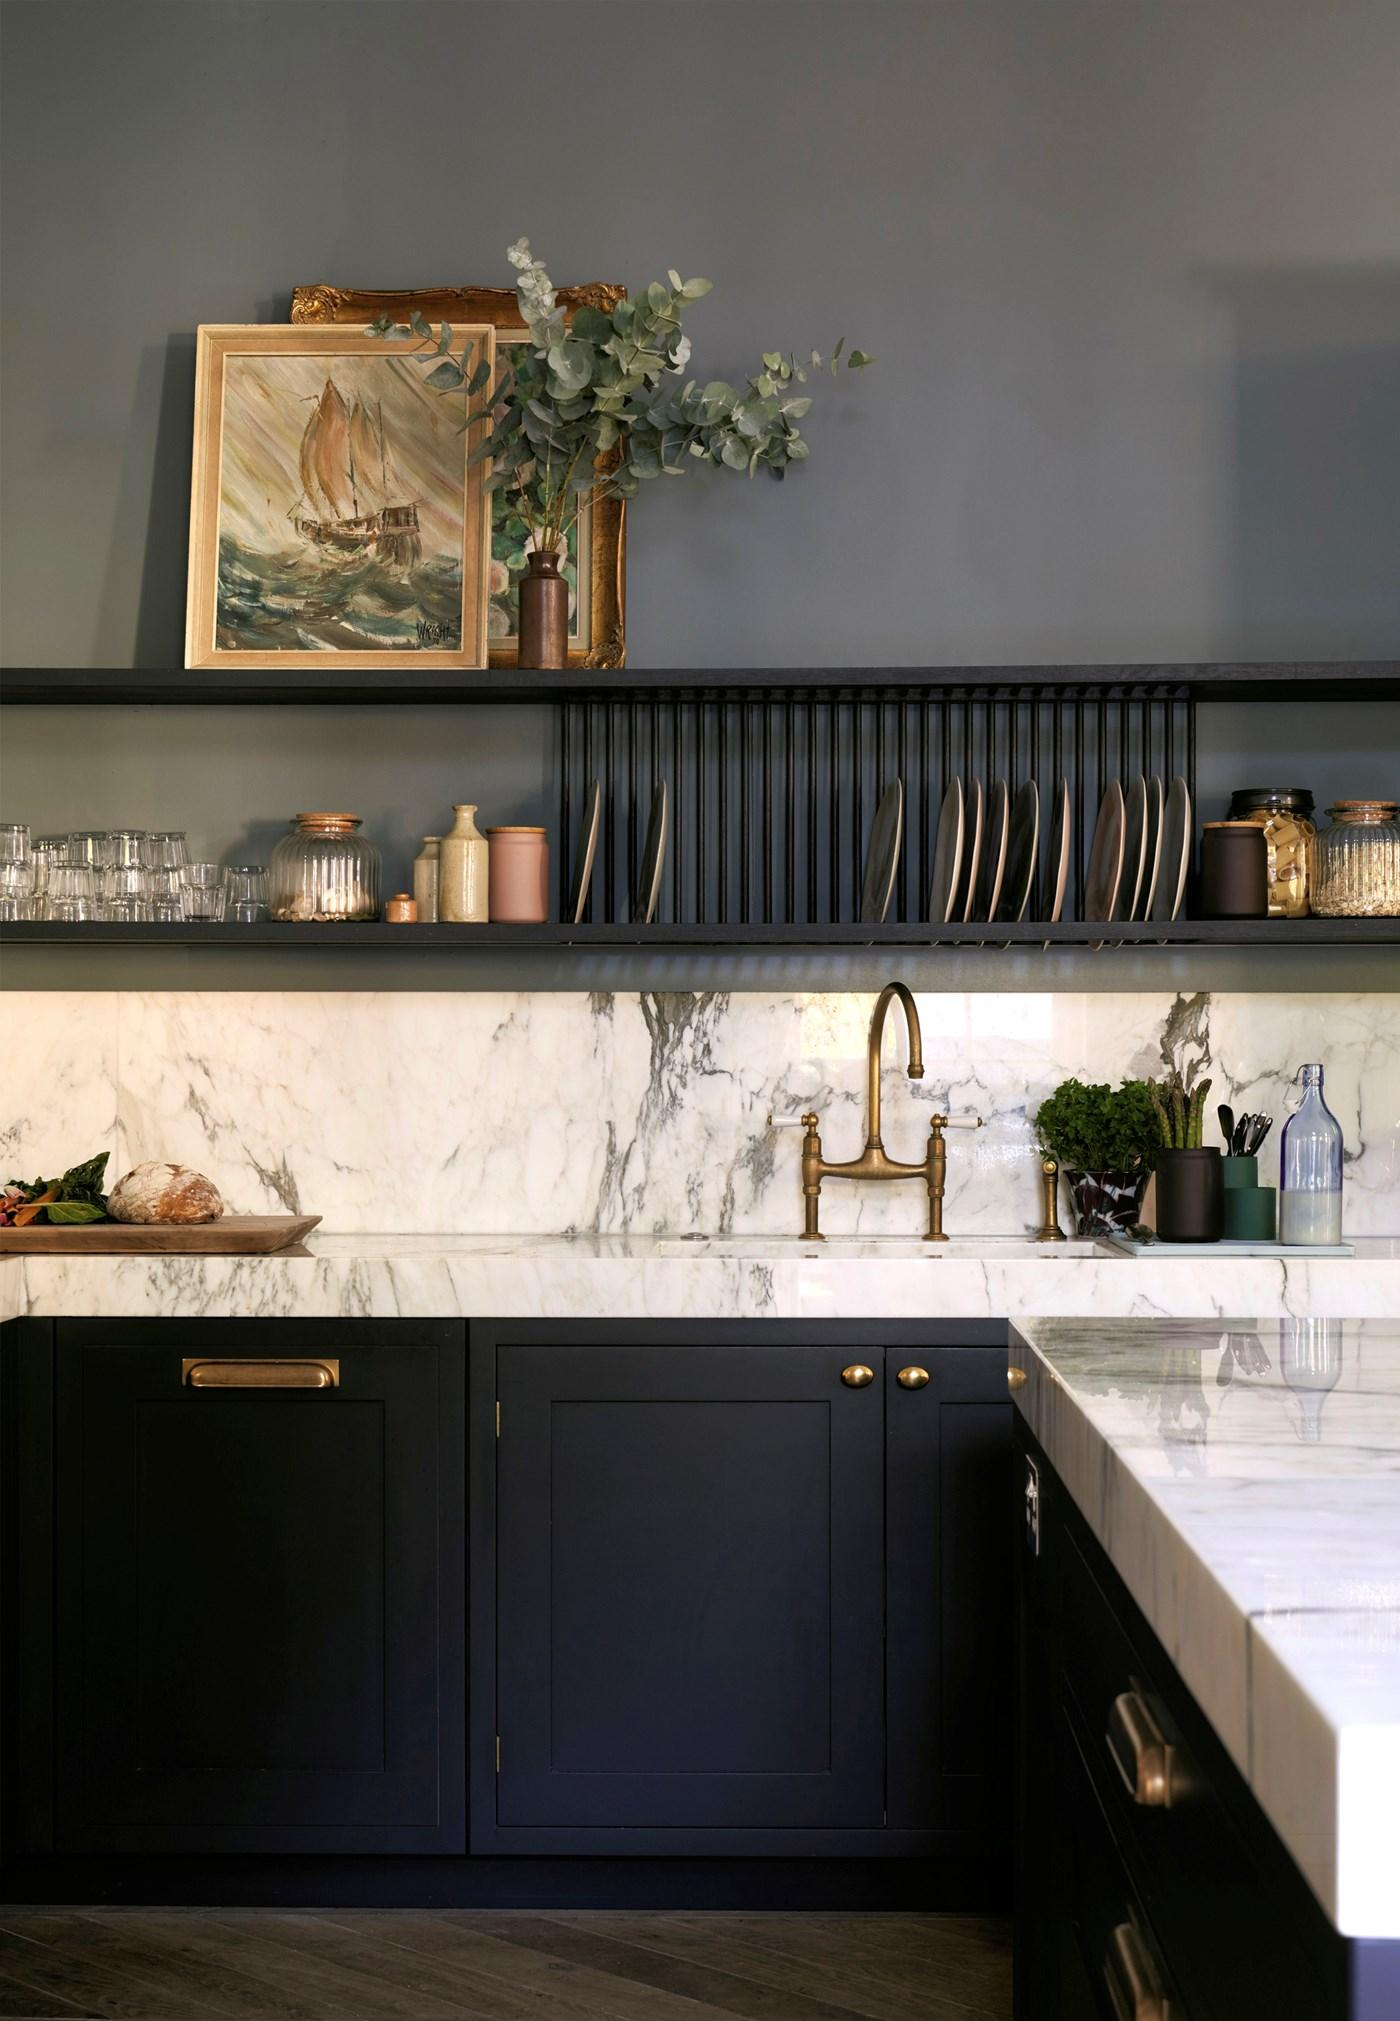 Two Tone Blue and White Kitchen Room Decor Inspiration| Blue is a really versatile colour to decorate your home with. But, which colours and tones work well? What kind of accessories work with blue? This post gives you ideas for pulling together an elegant blue colour palette and pieces for your home. Read more: kittyandb.com #blueroom #kitchen #railings #denimes #BlueAndWhite #colourfulhomedecor #bluecolorpalette #blueaesthetic